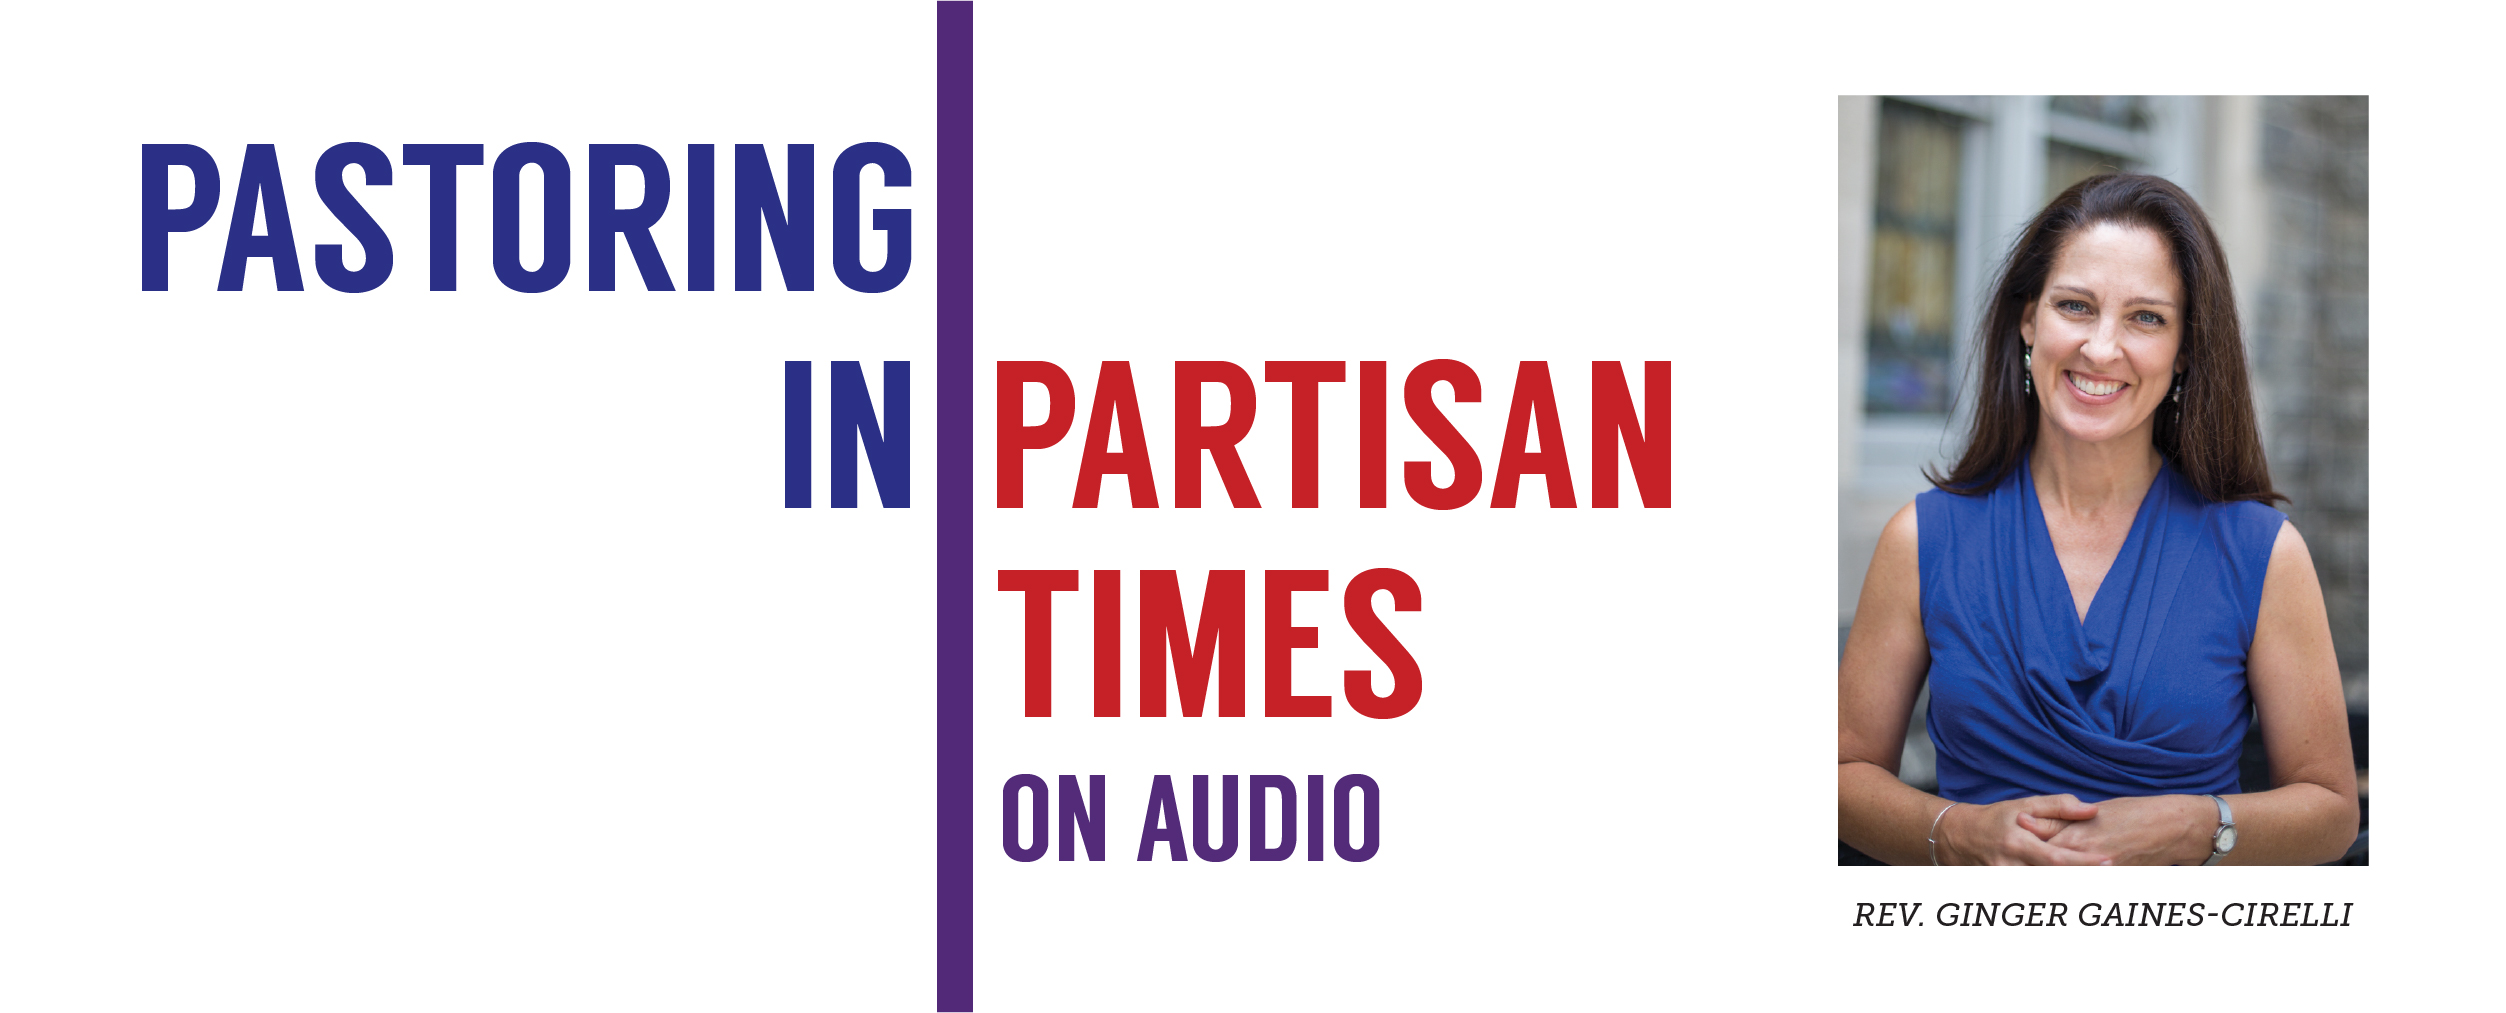 Pastoring in Partisan Times Podcast: Sacred Resistance with Rev. Ginger Gaines-Cirelli